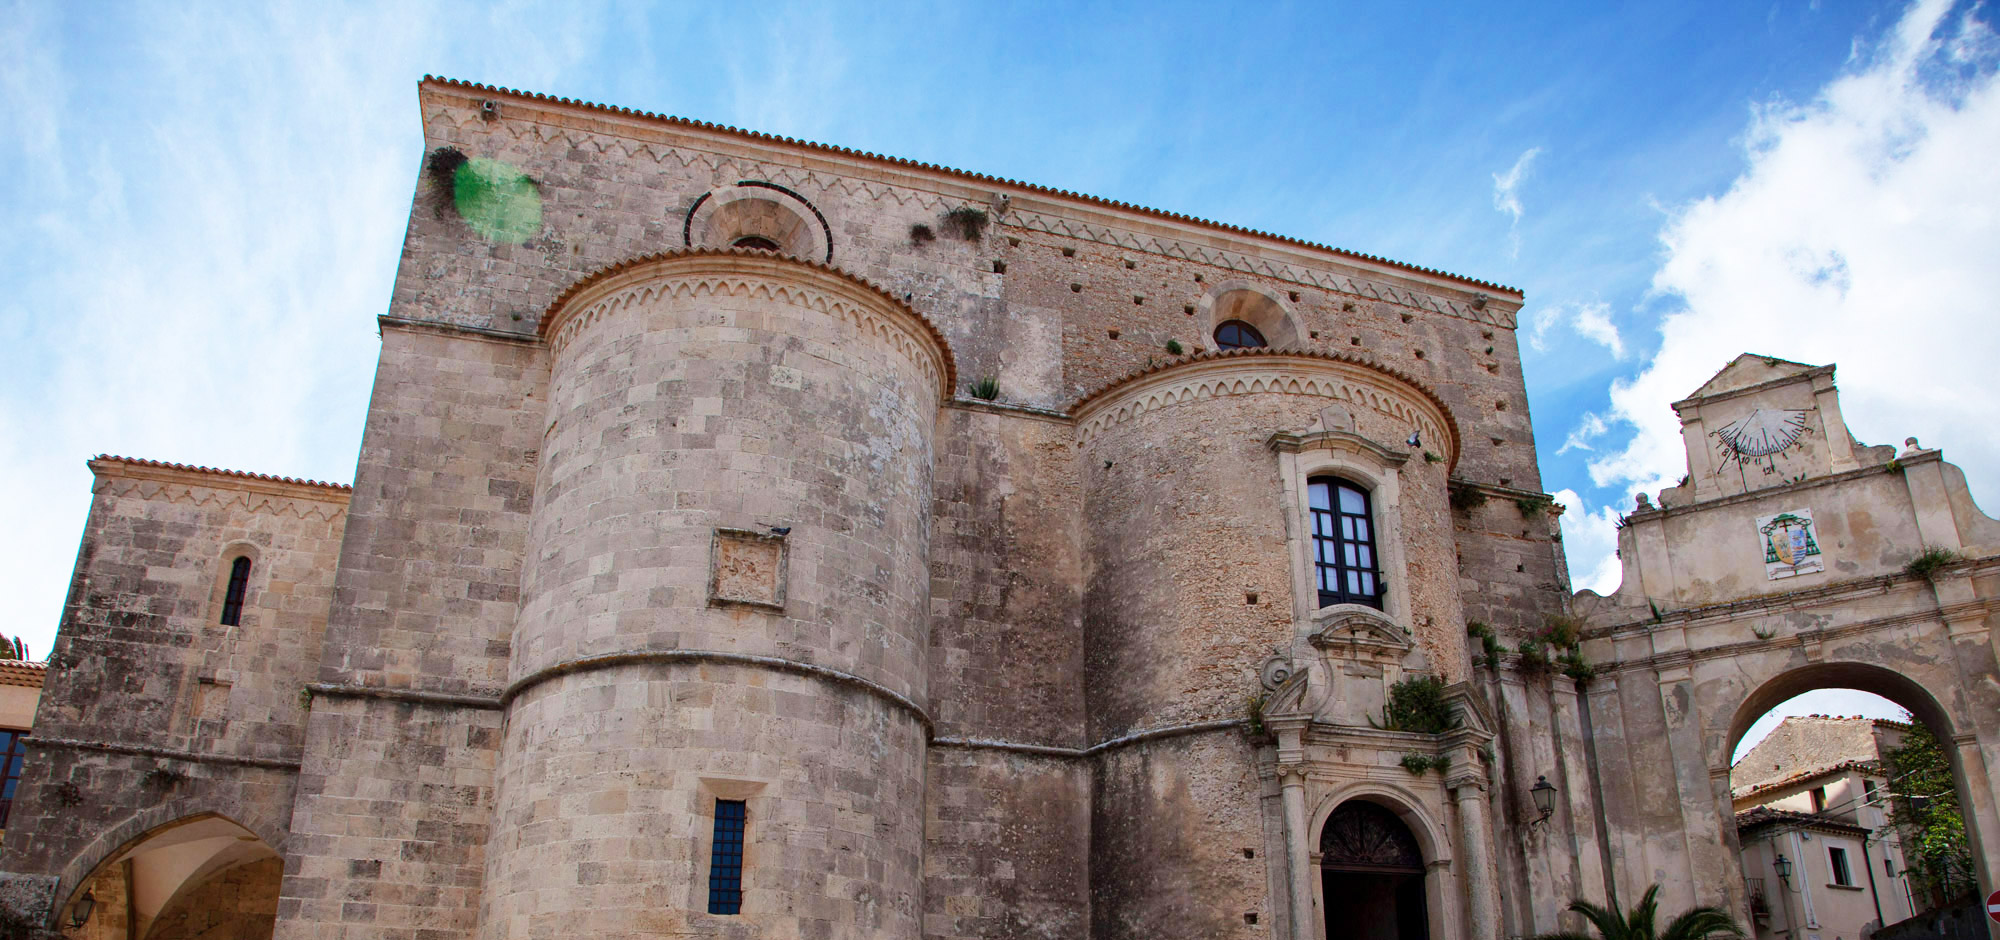 The Gerace Cathedral